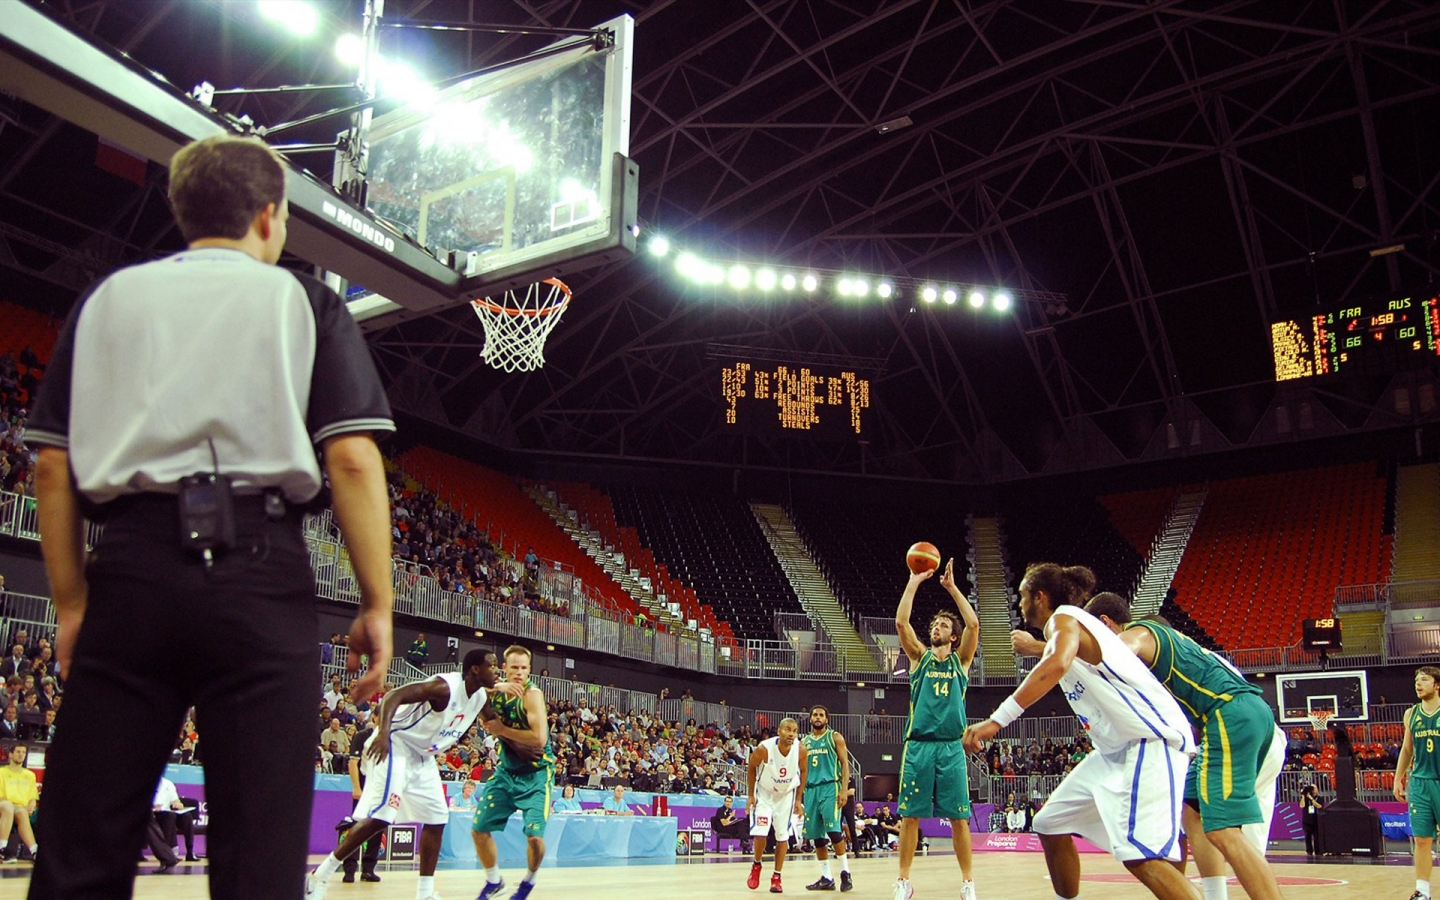 Basketball on the Olympic Park for 1440 x 900 widescreen resolution